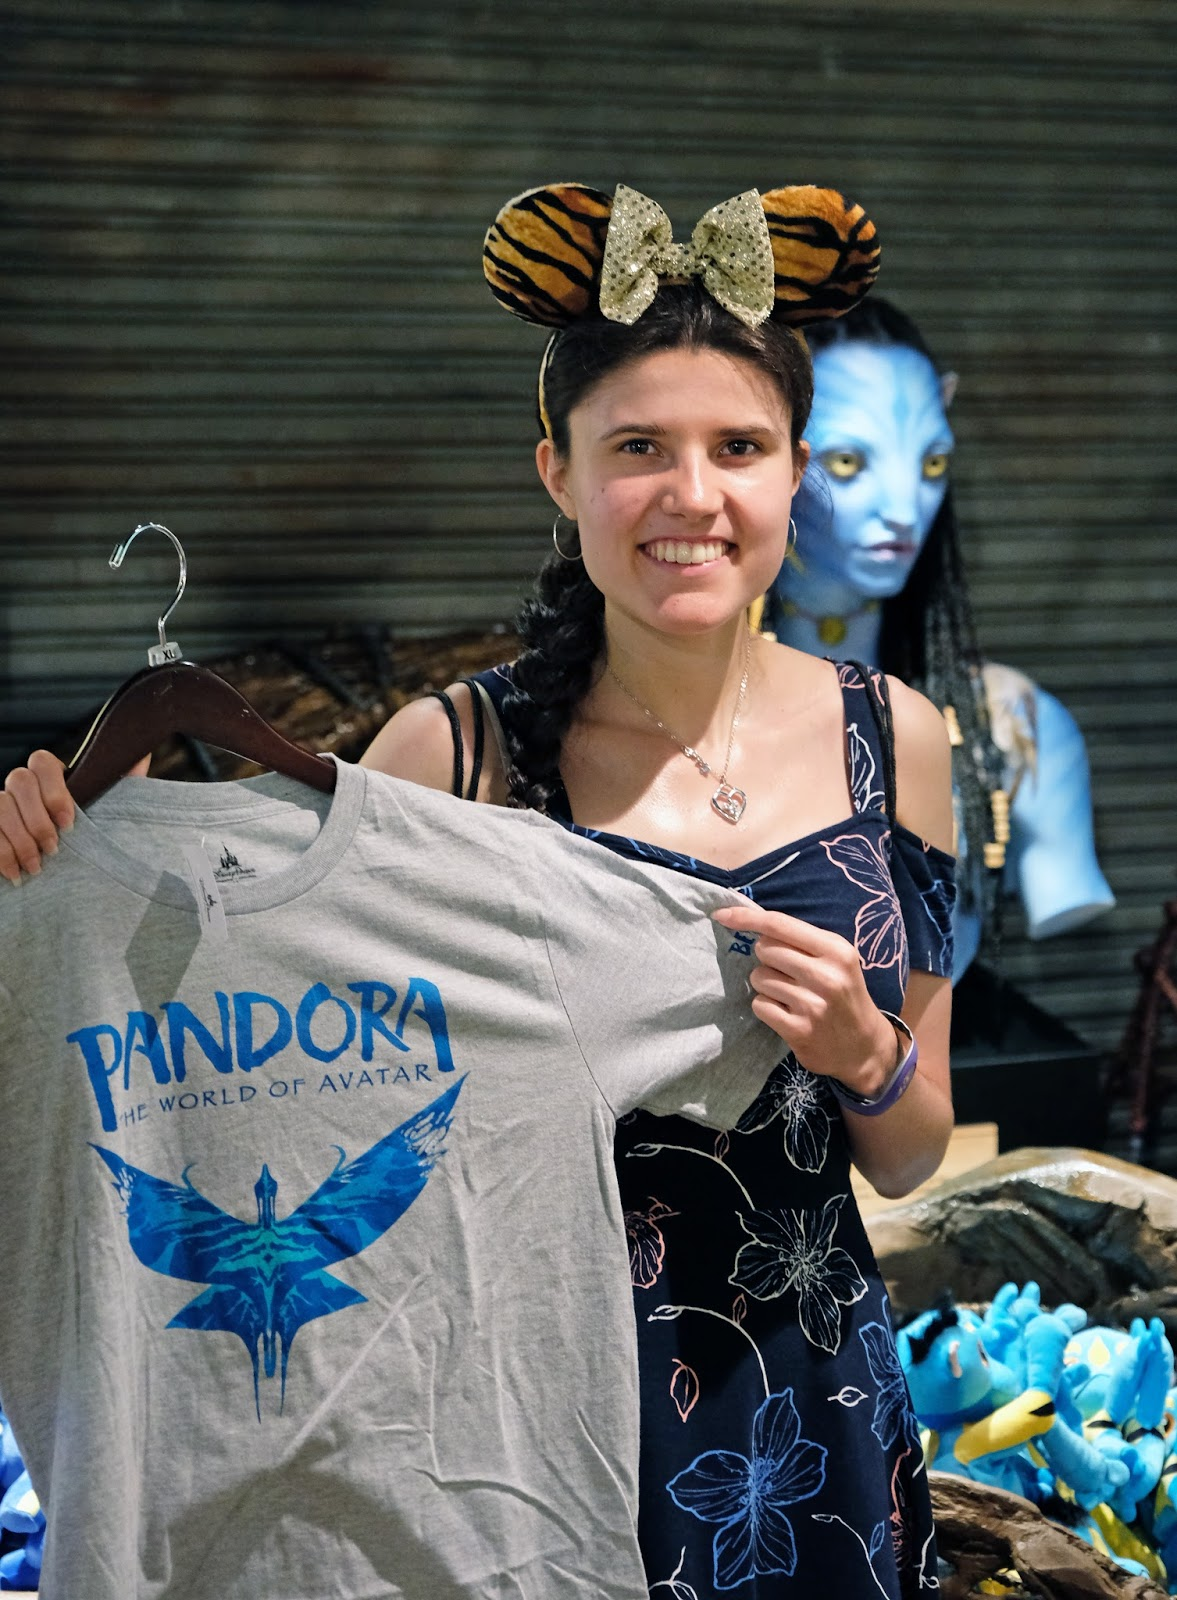 Pandora - The World of Avatar merchandise